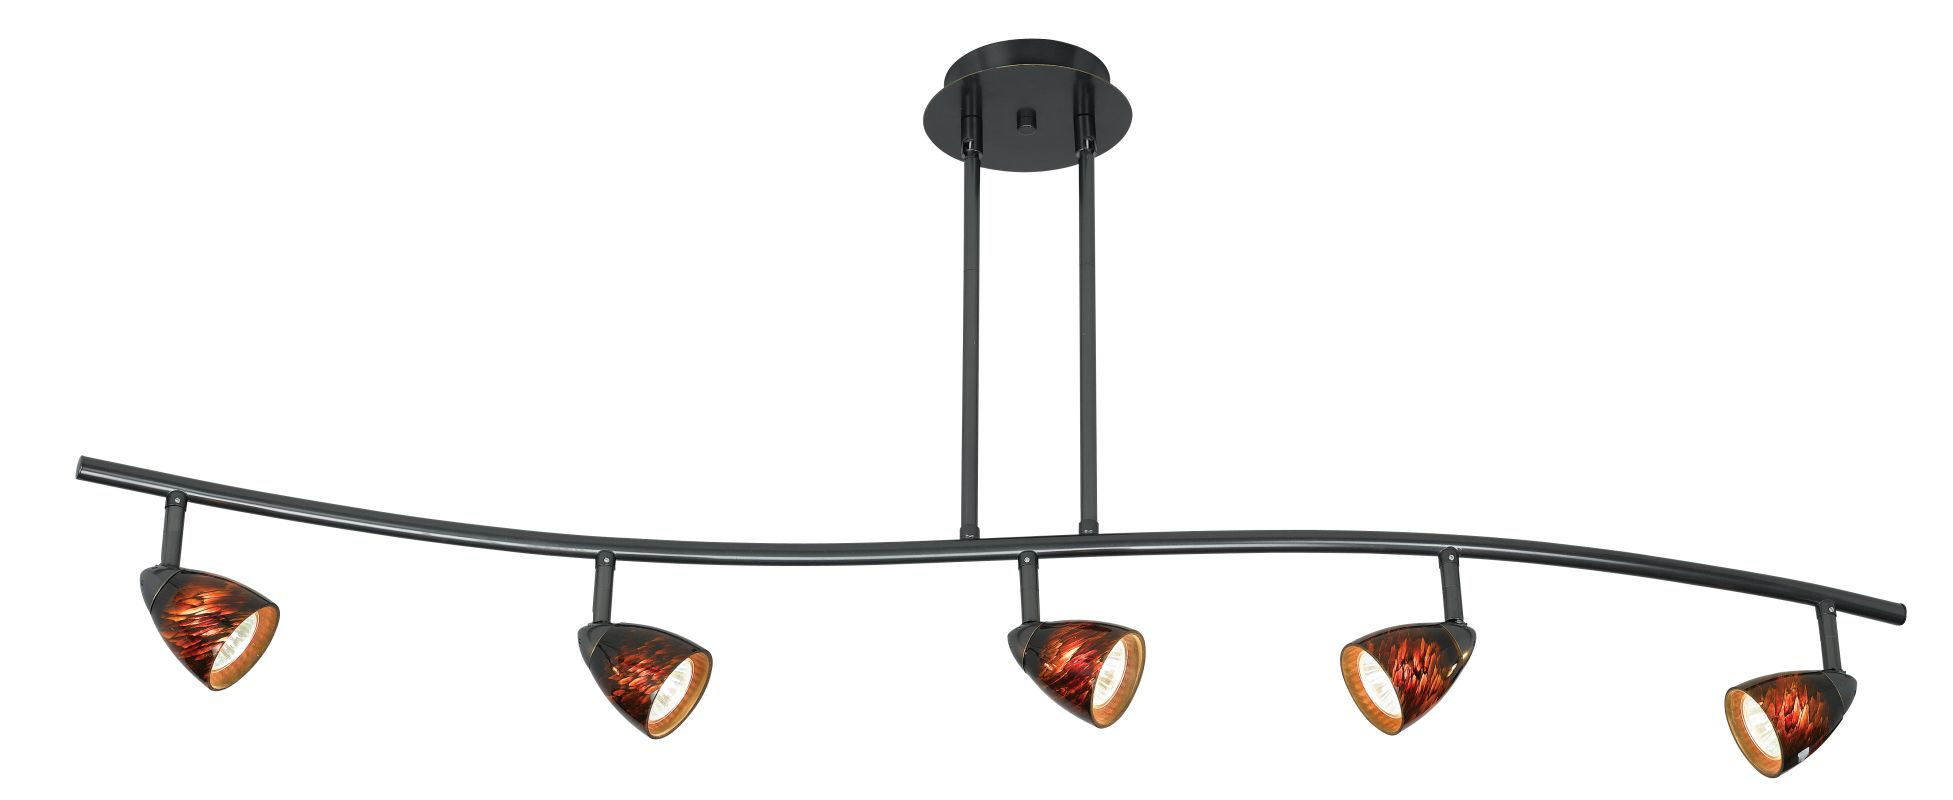 Cal Lighting SL-954-5-BRNS 5 Light Canopy Mount Orbit Light with Brown Sale $301.10 ITEM: bci888278 ID#:SL-954-5-DBBRNS UPC: 20193040959 :